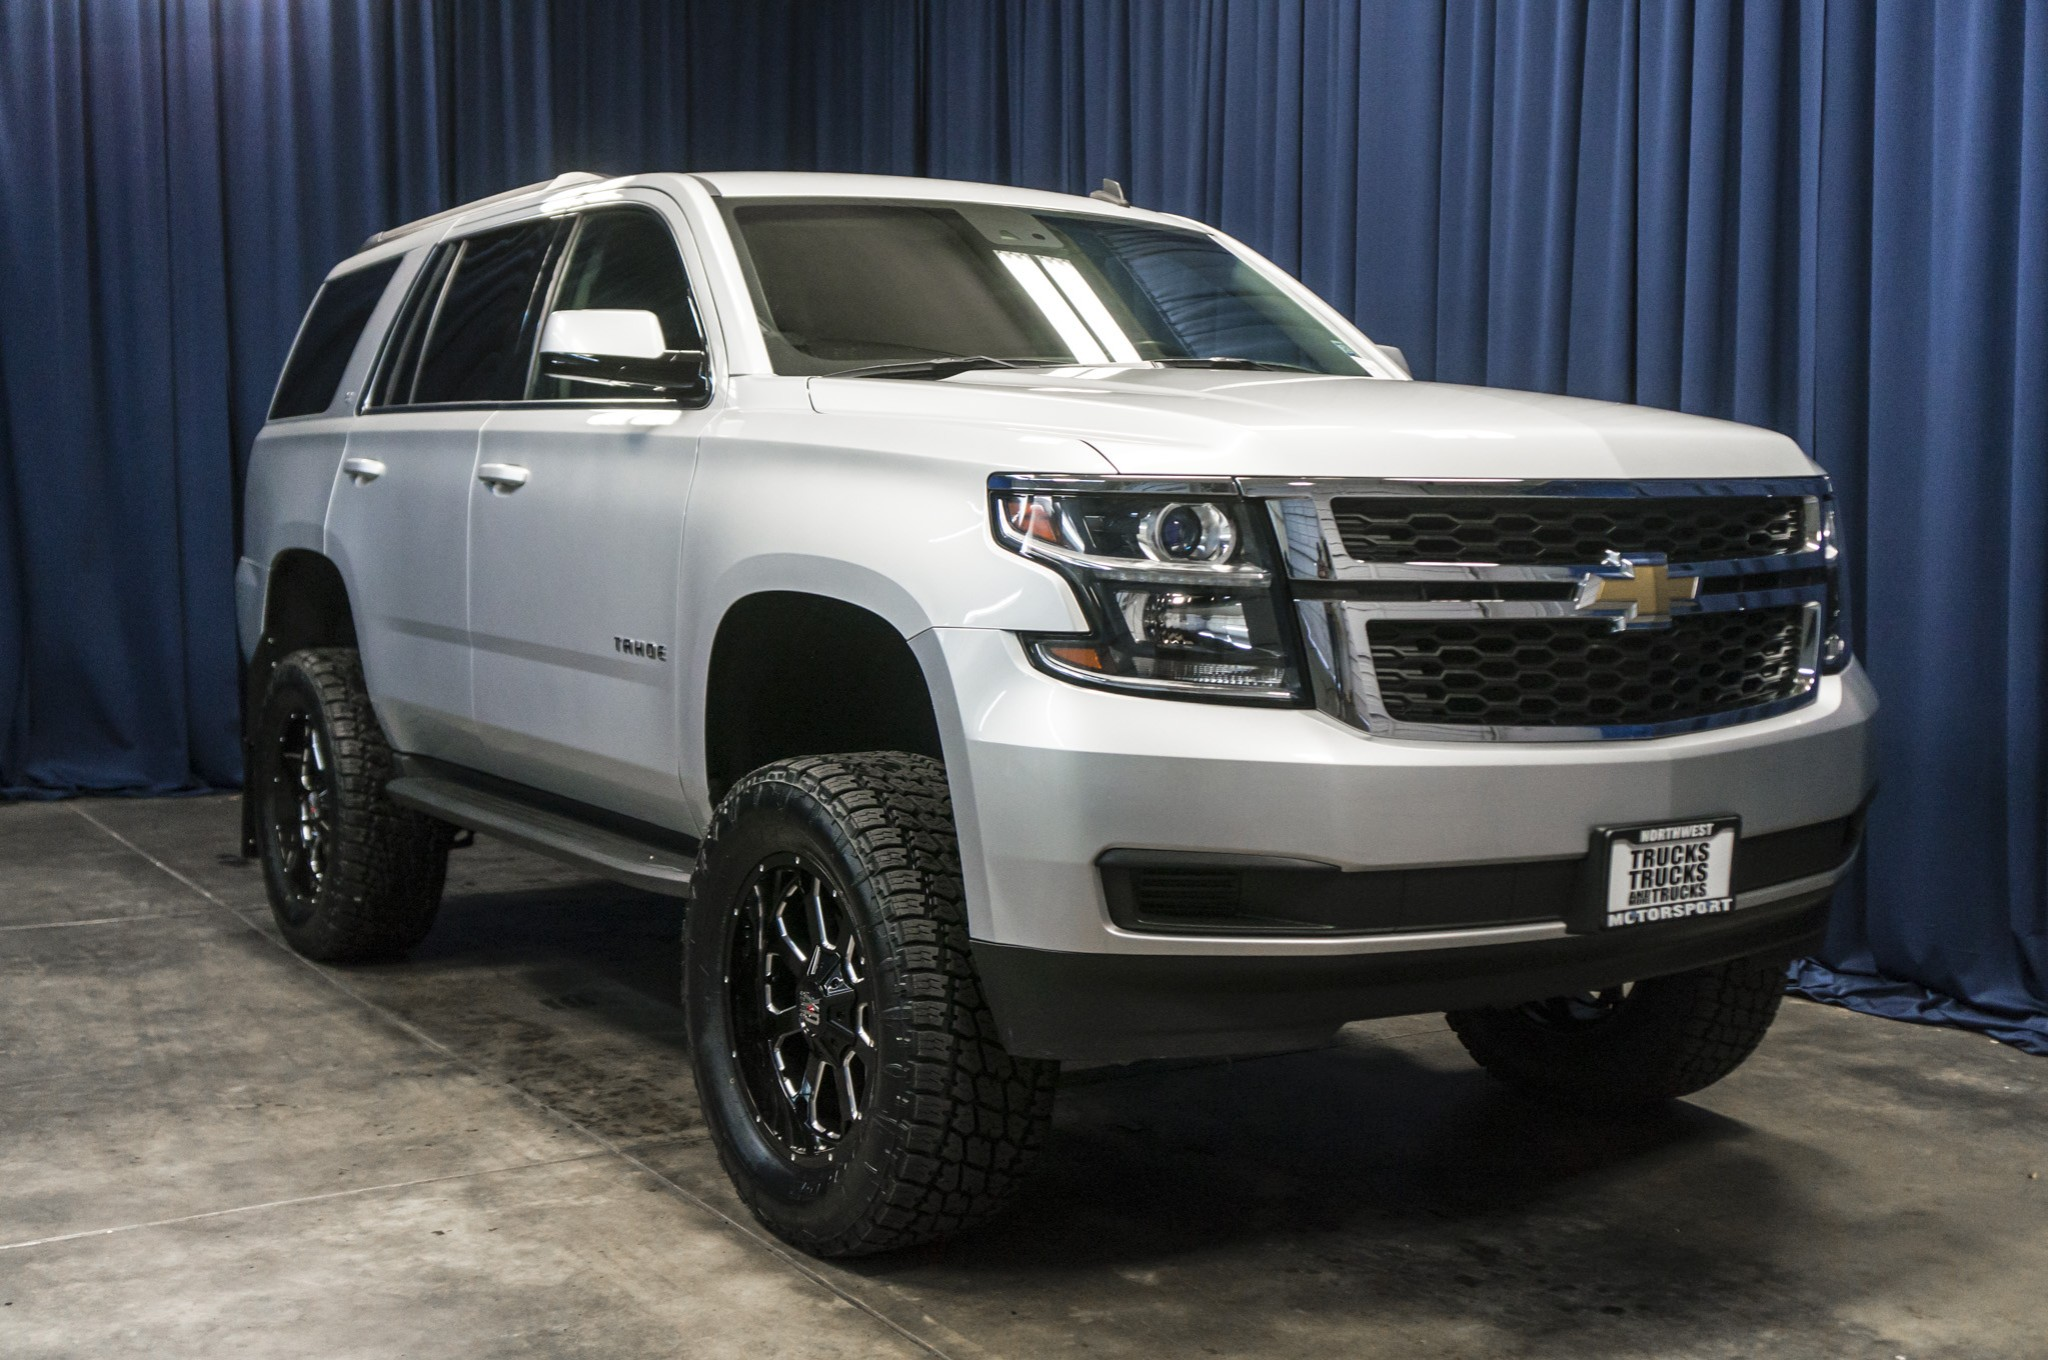 Used Lifted 2015 Chevrolet Tahoe LT 4x4 SUV For Sale - 37186